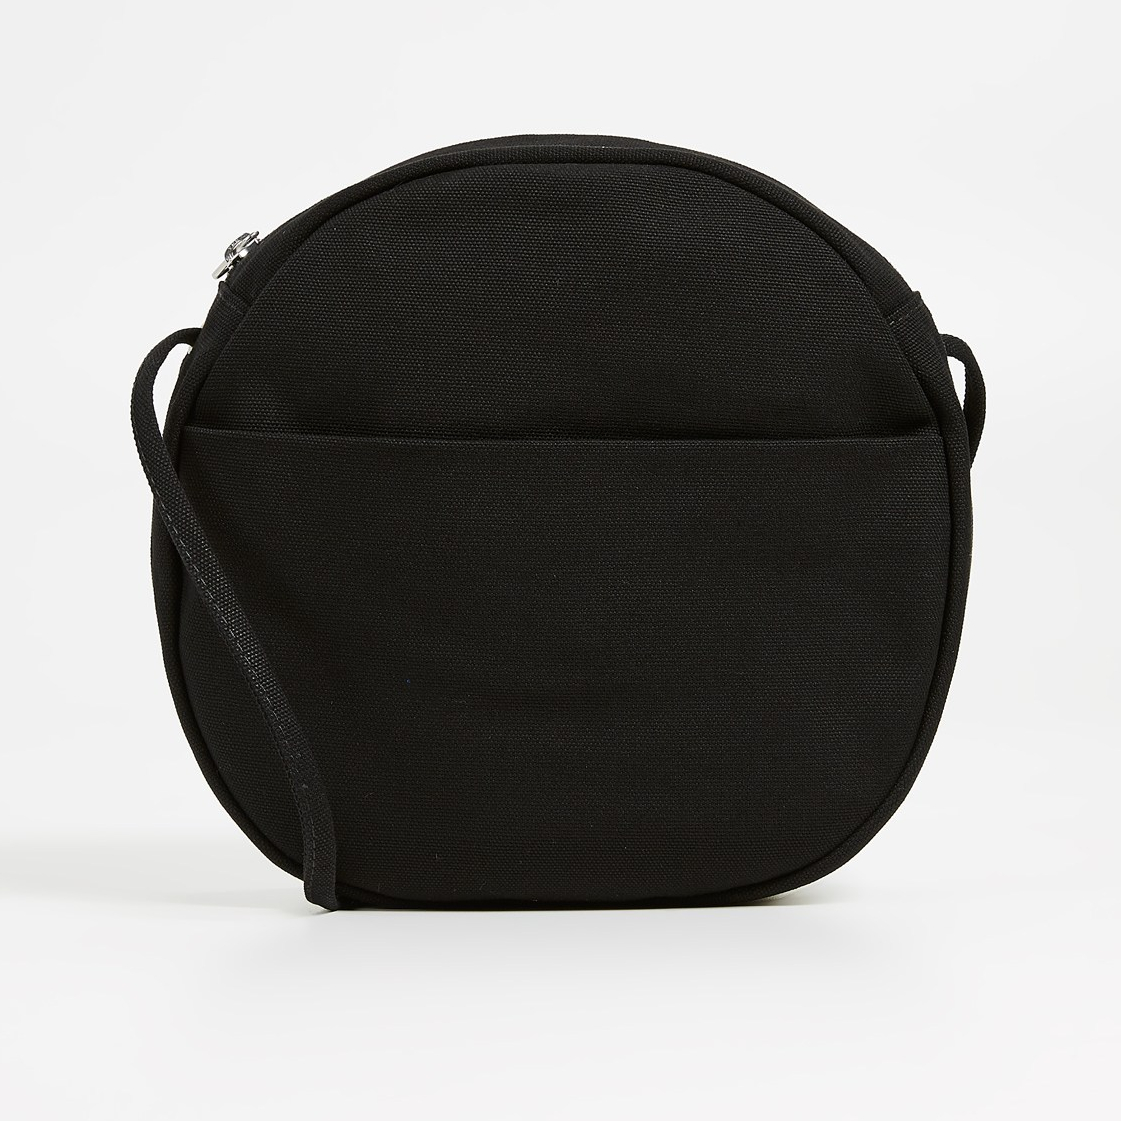 101e4e461 Baggu Circle Bag | Best Round Bags for Spring 2019 | CoffeeAndHandbags.com